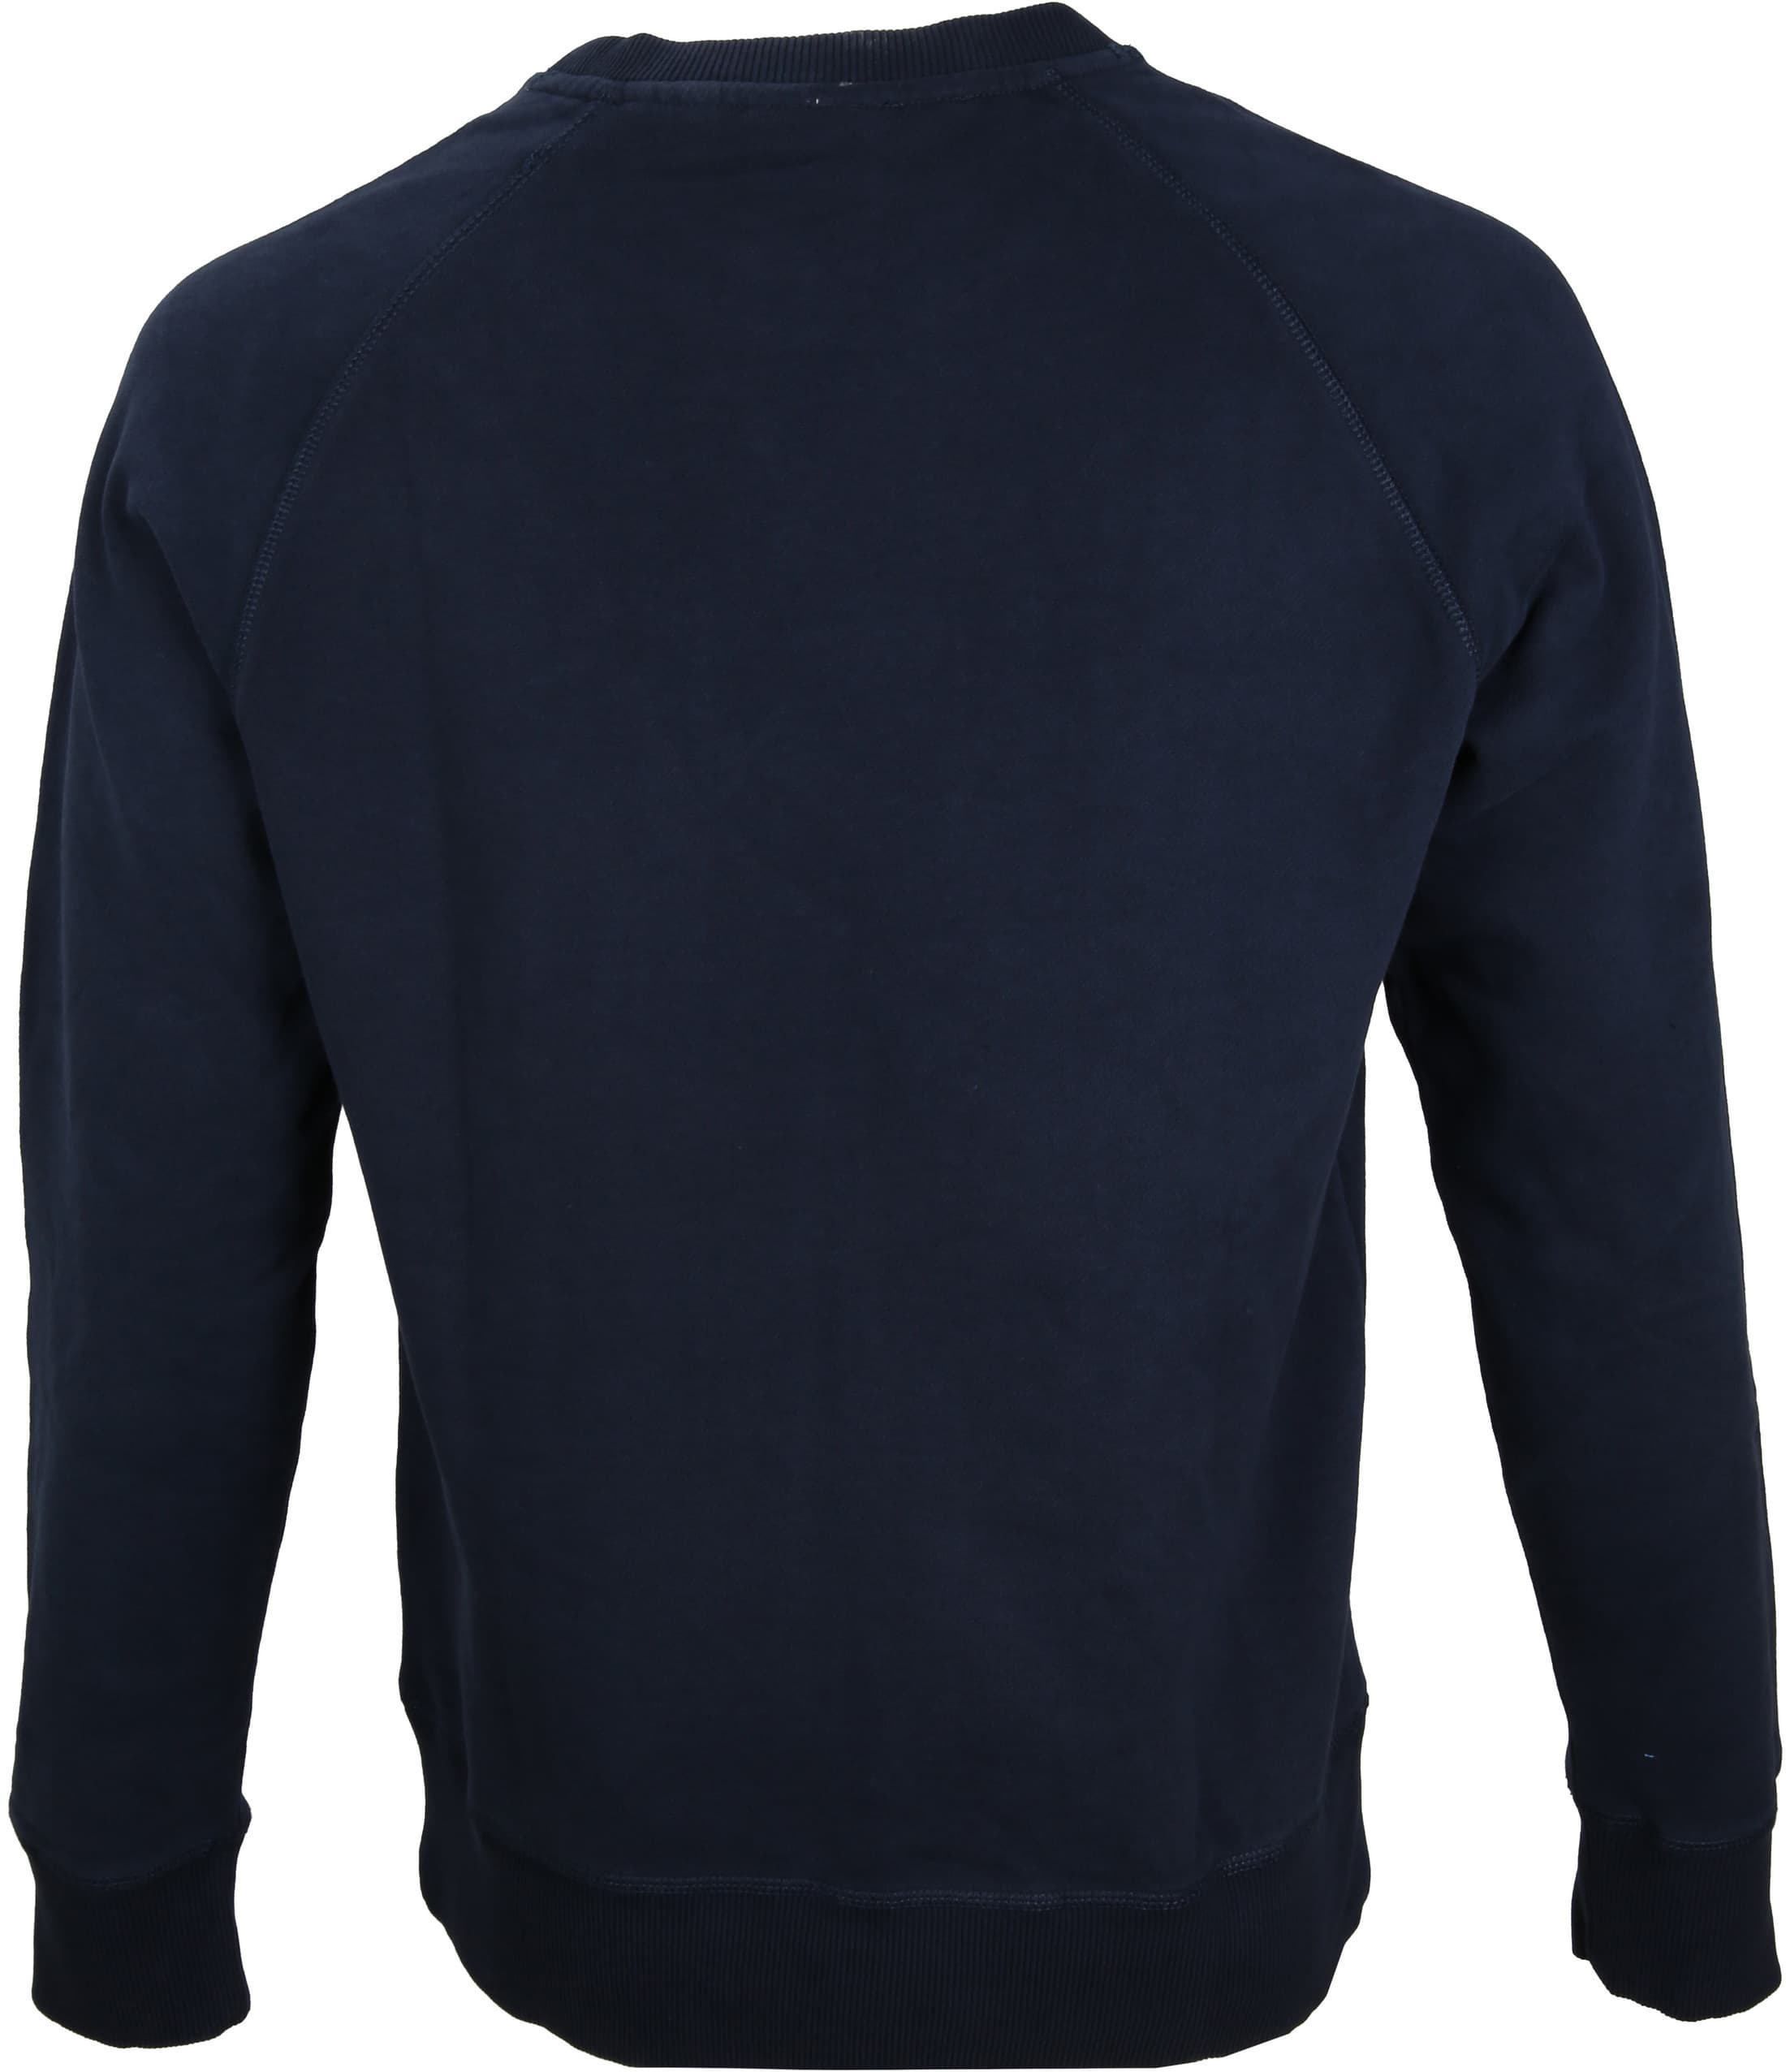 Timberland Sweater Navy foto 2